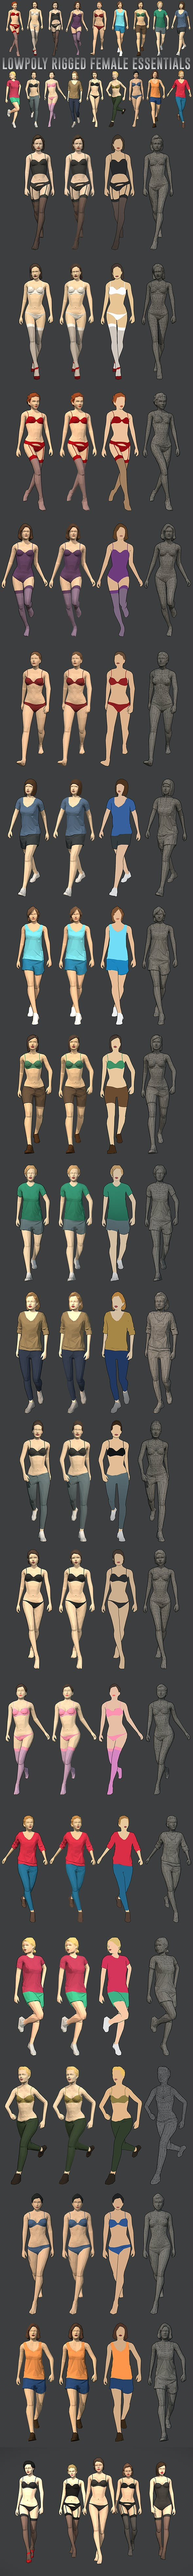 Lowpoly Rigged Female Essentials - 3DOcean Item for Sale